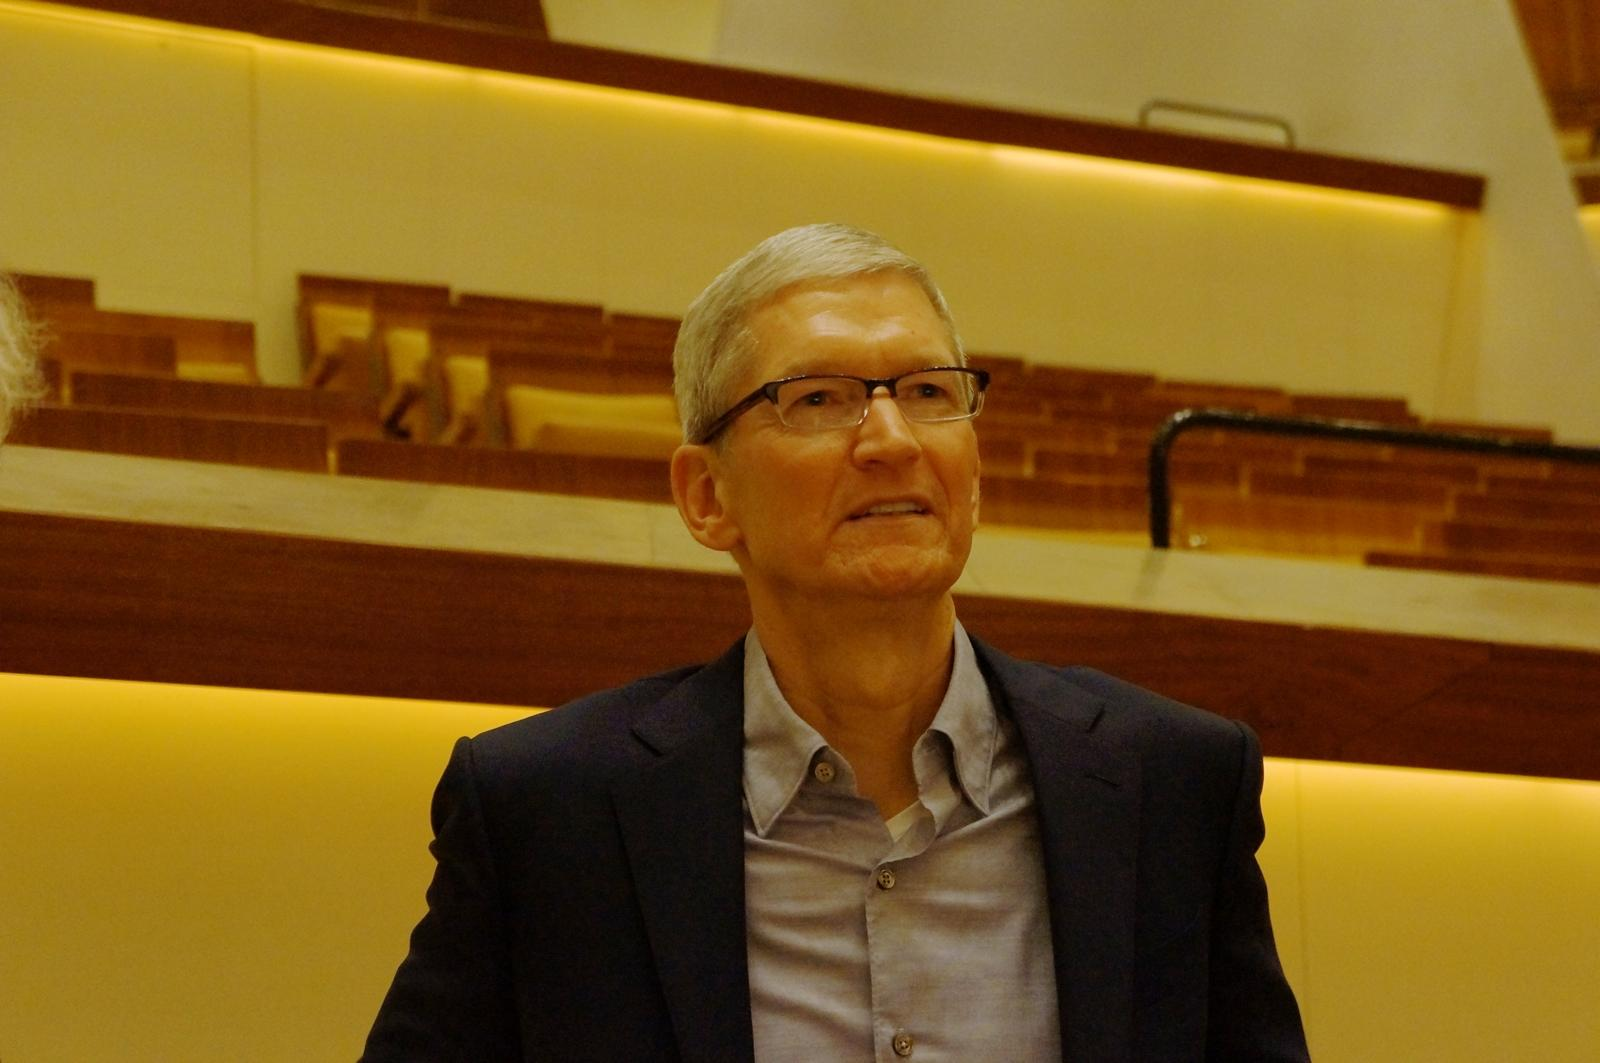 Digital Concert Hall Tim Cook 02